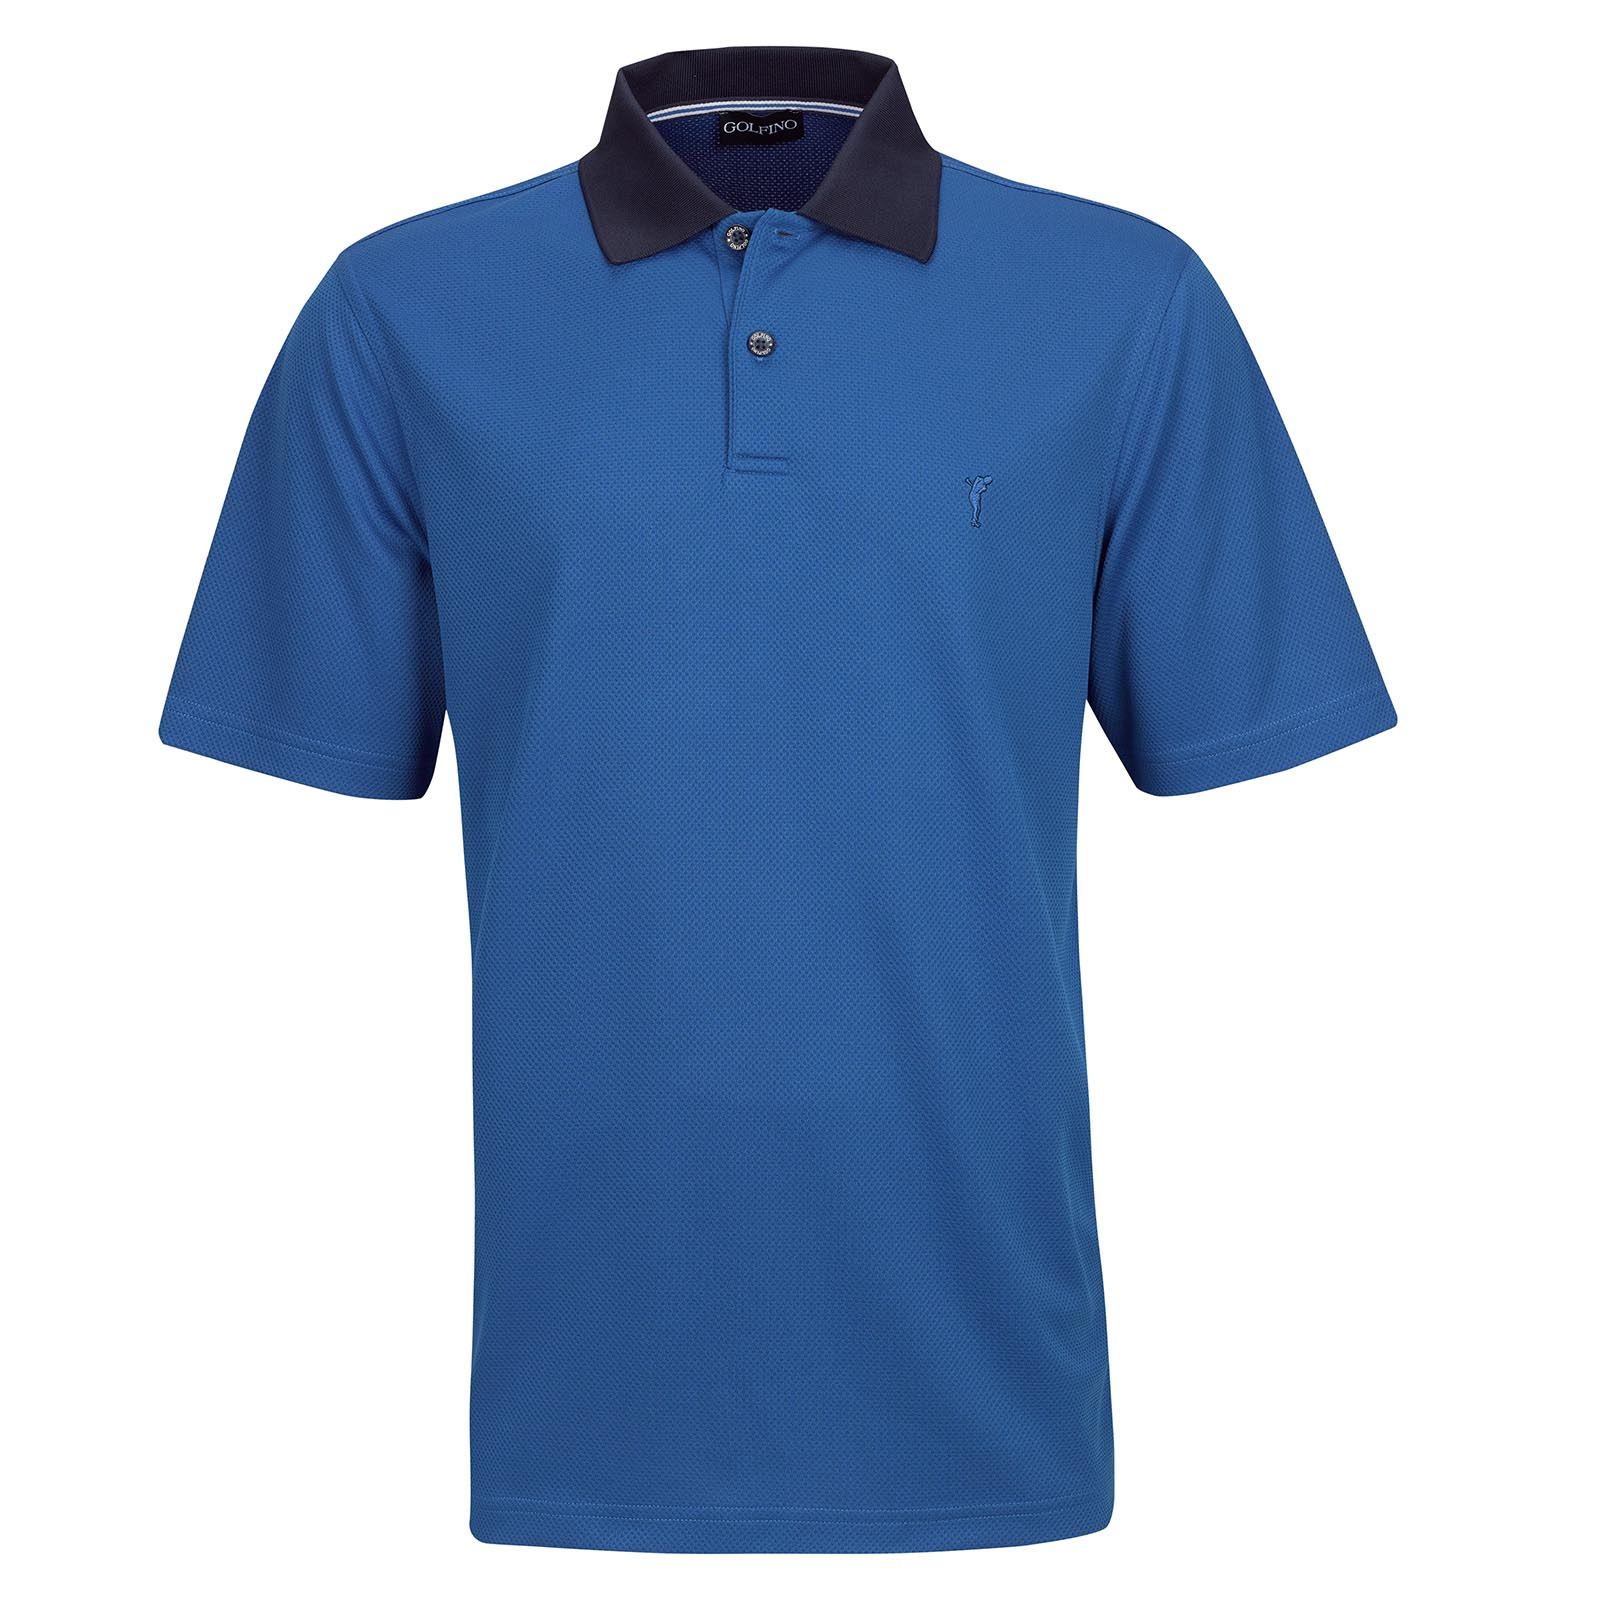 Resort Wear men's short sleeve golf Kafetex®  Polo with moisture management